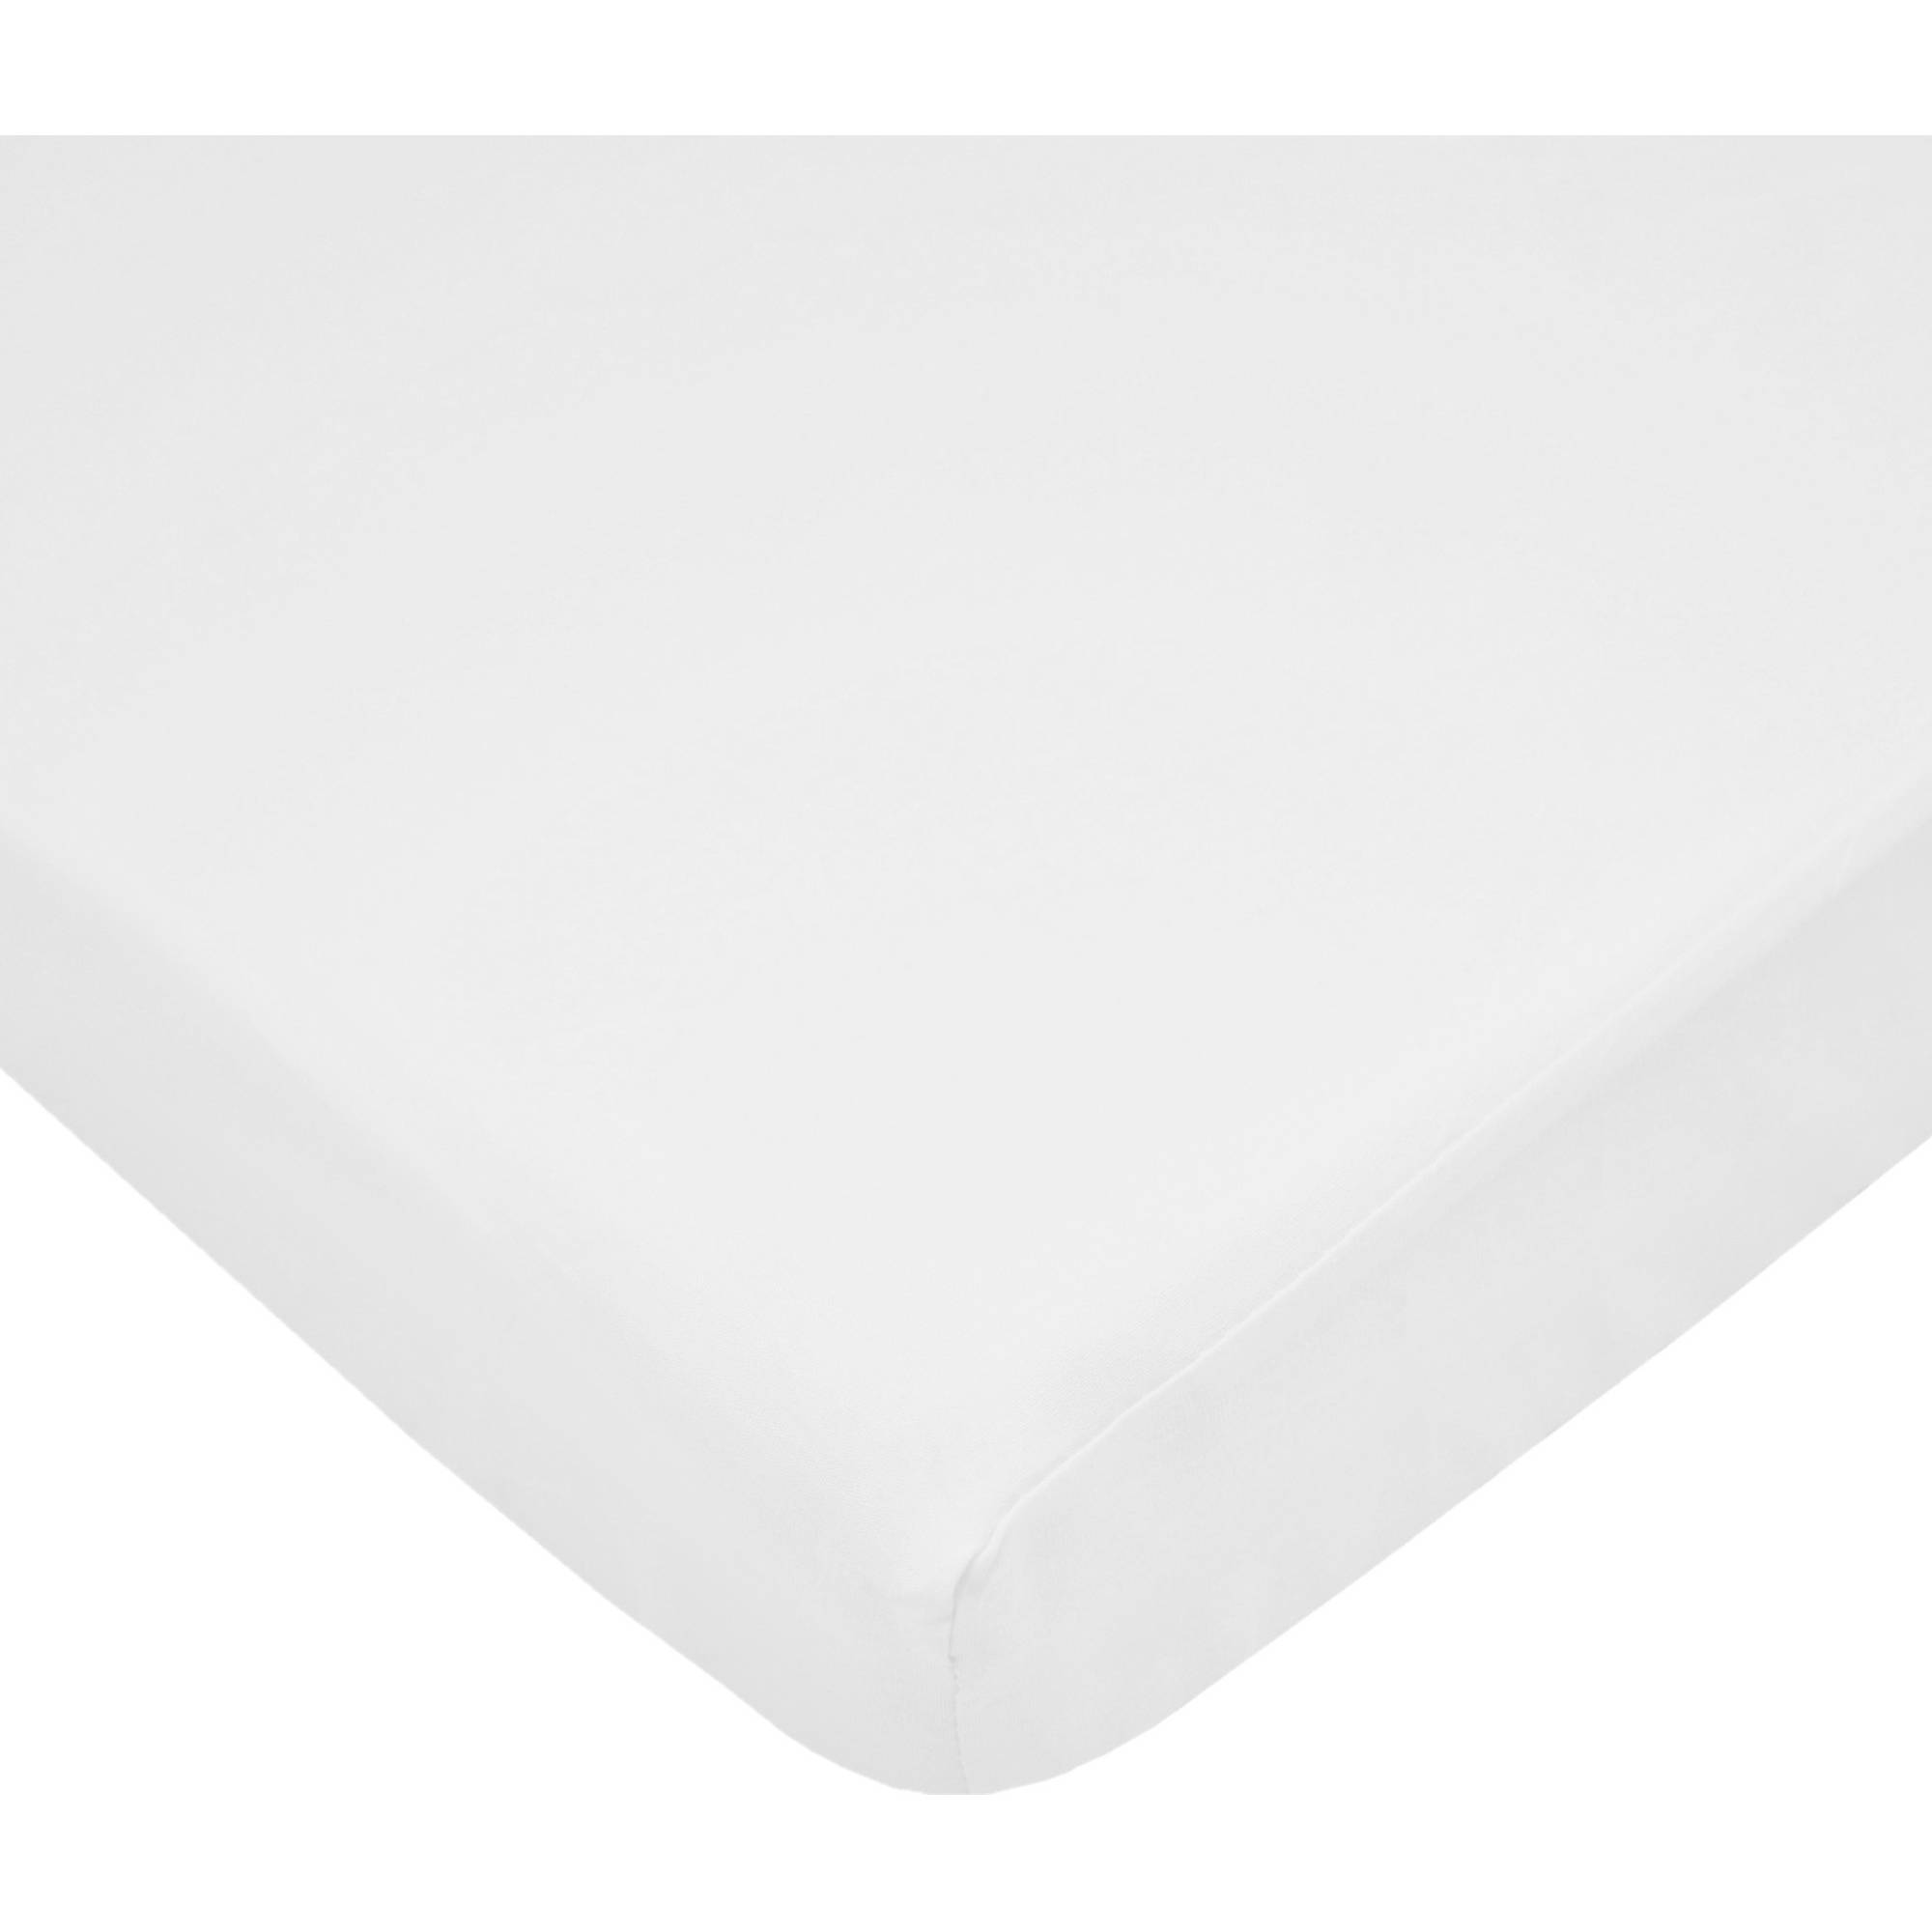 Soft Breathable for Boys and Girls White TL Care 100/% Natural Jersey Cotton 3 Piece Toddler Sheet Set